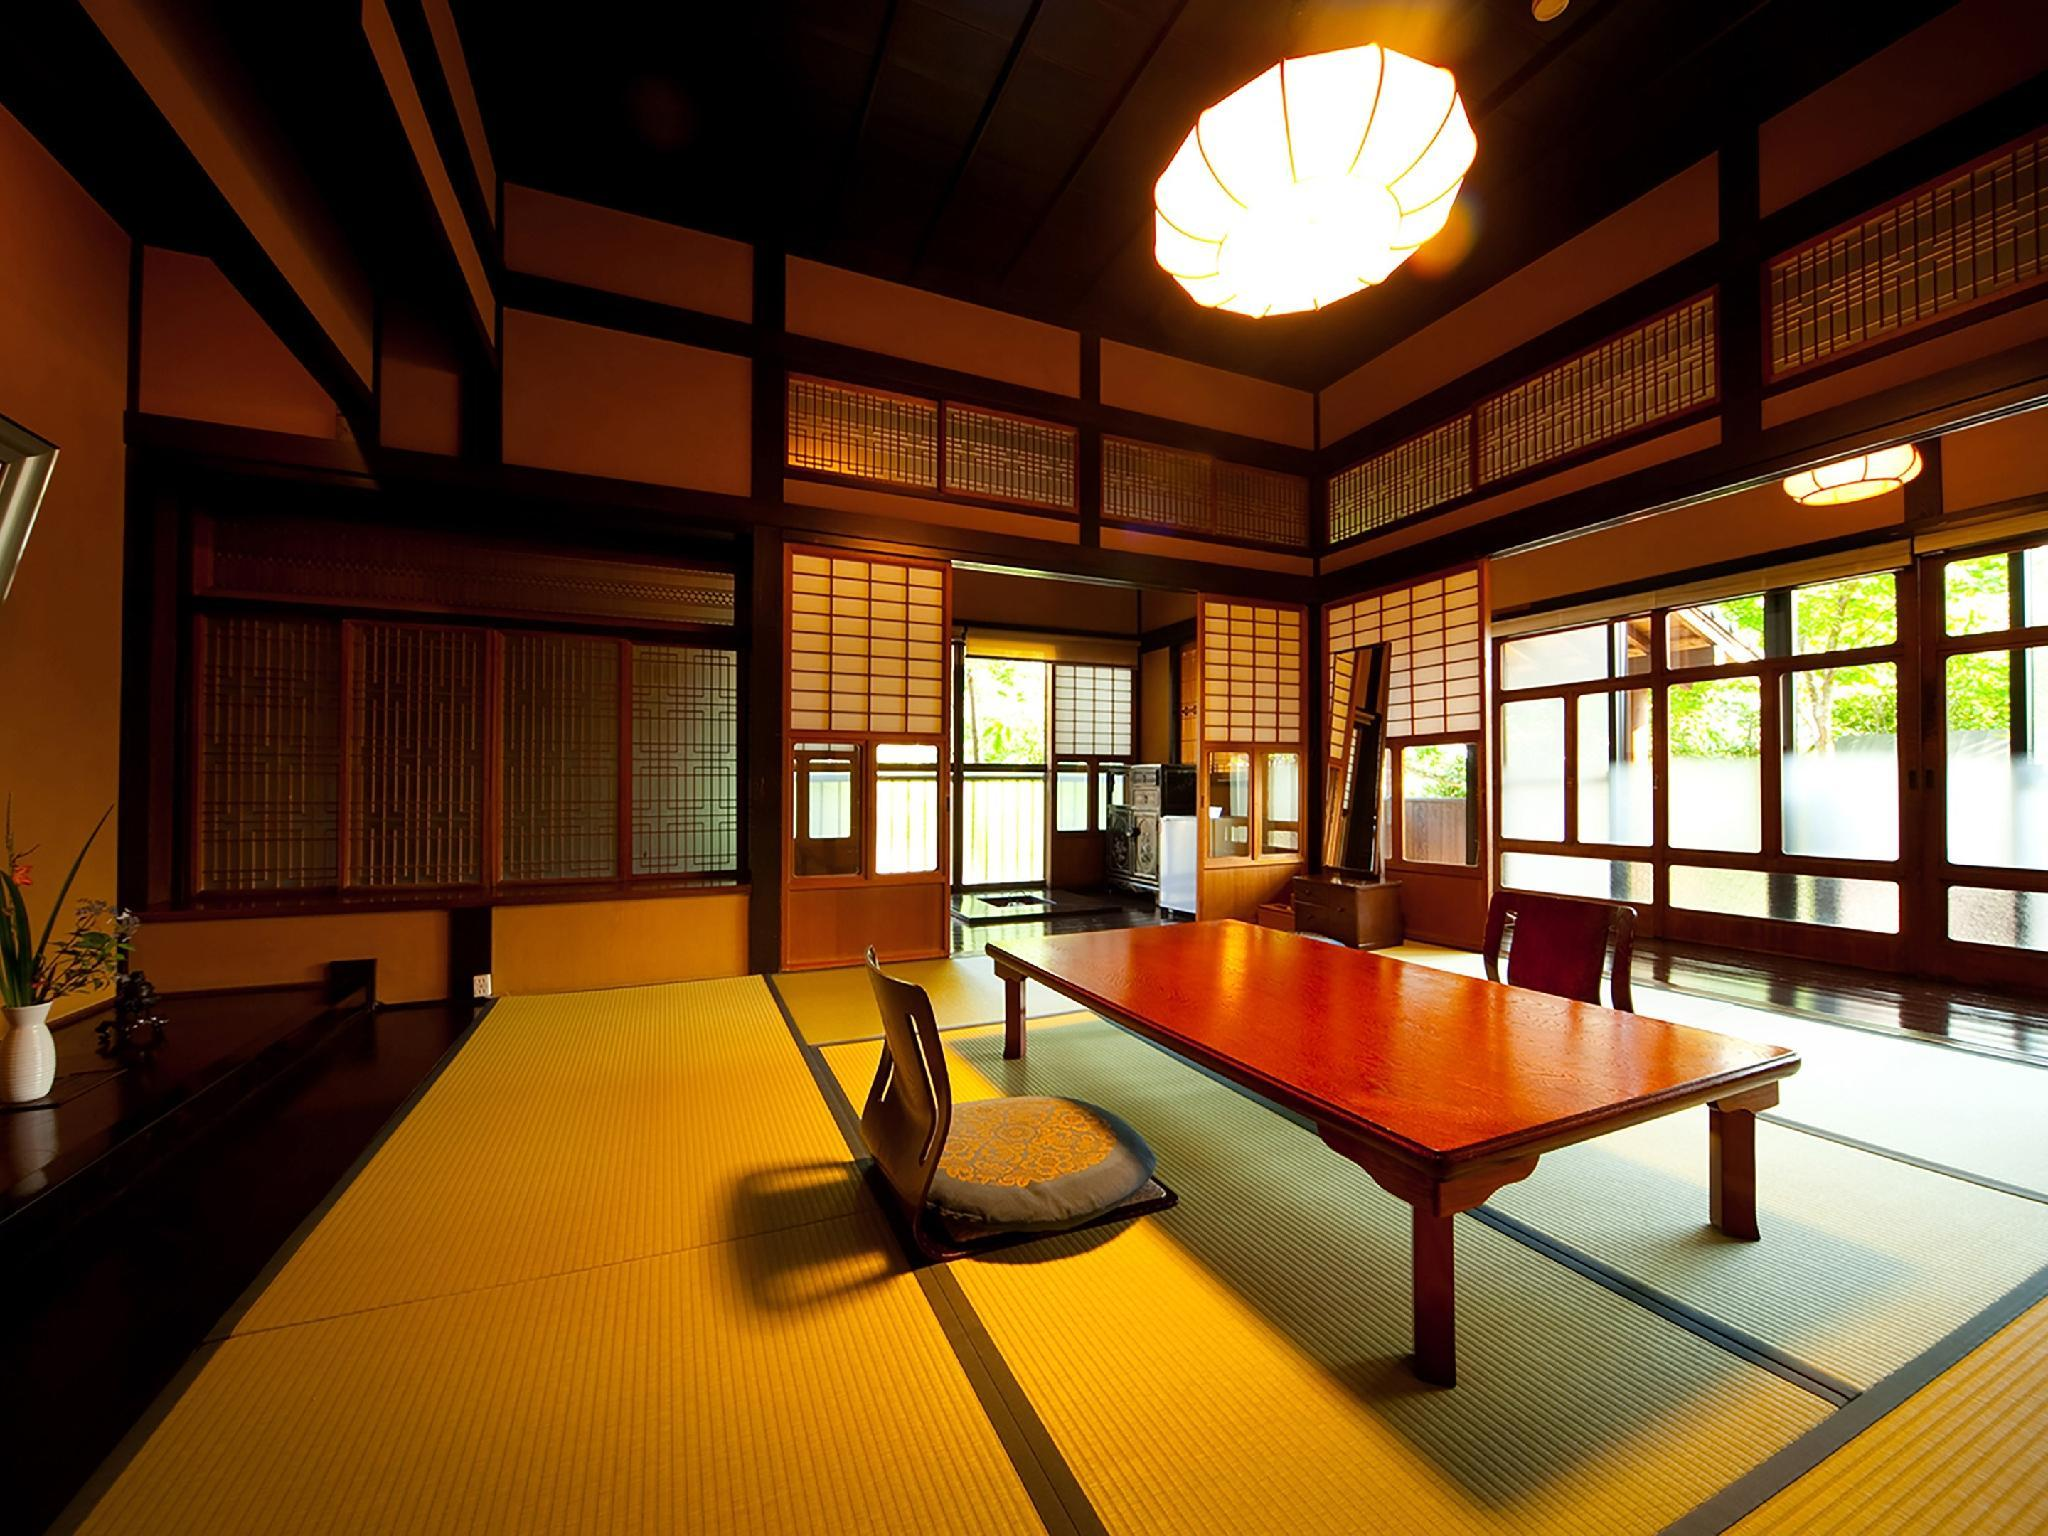 國東 獨立房(和式房8帖榻榻米+室內風呂) (Detached Japanese-style Room with Indoor Bath (8 tatami, Kunisaki Type))